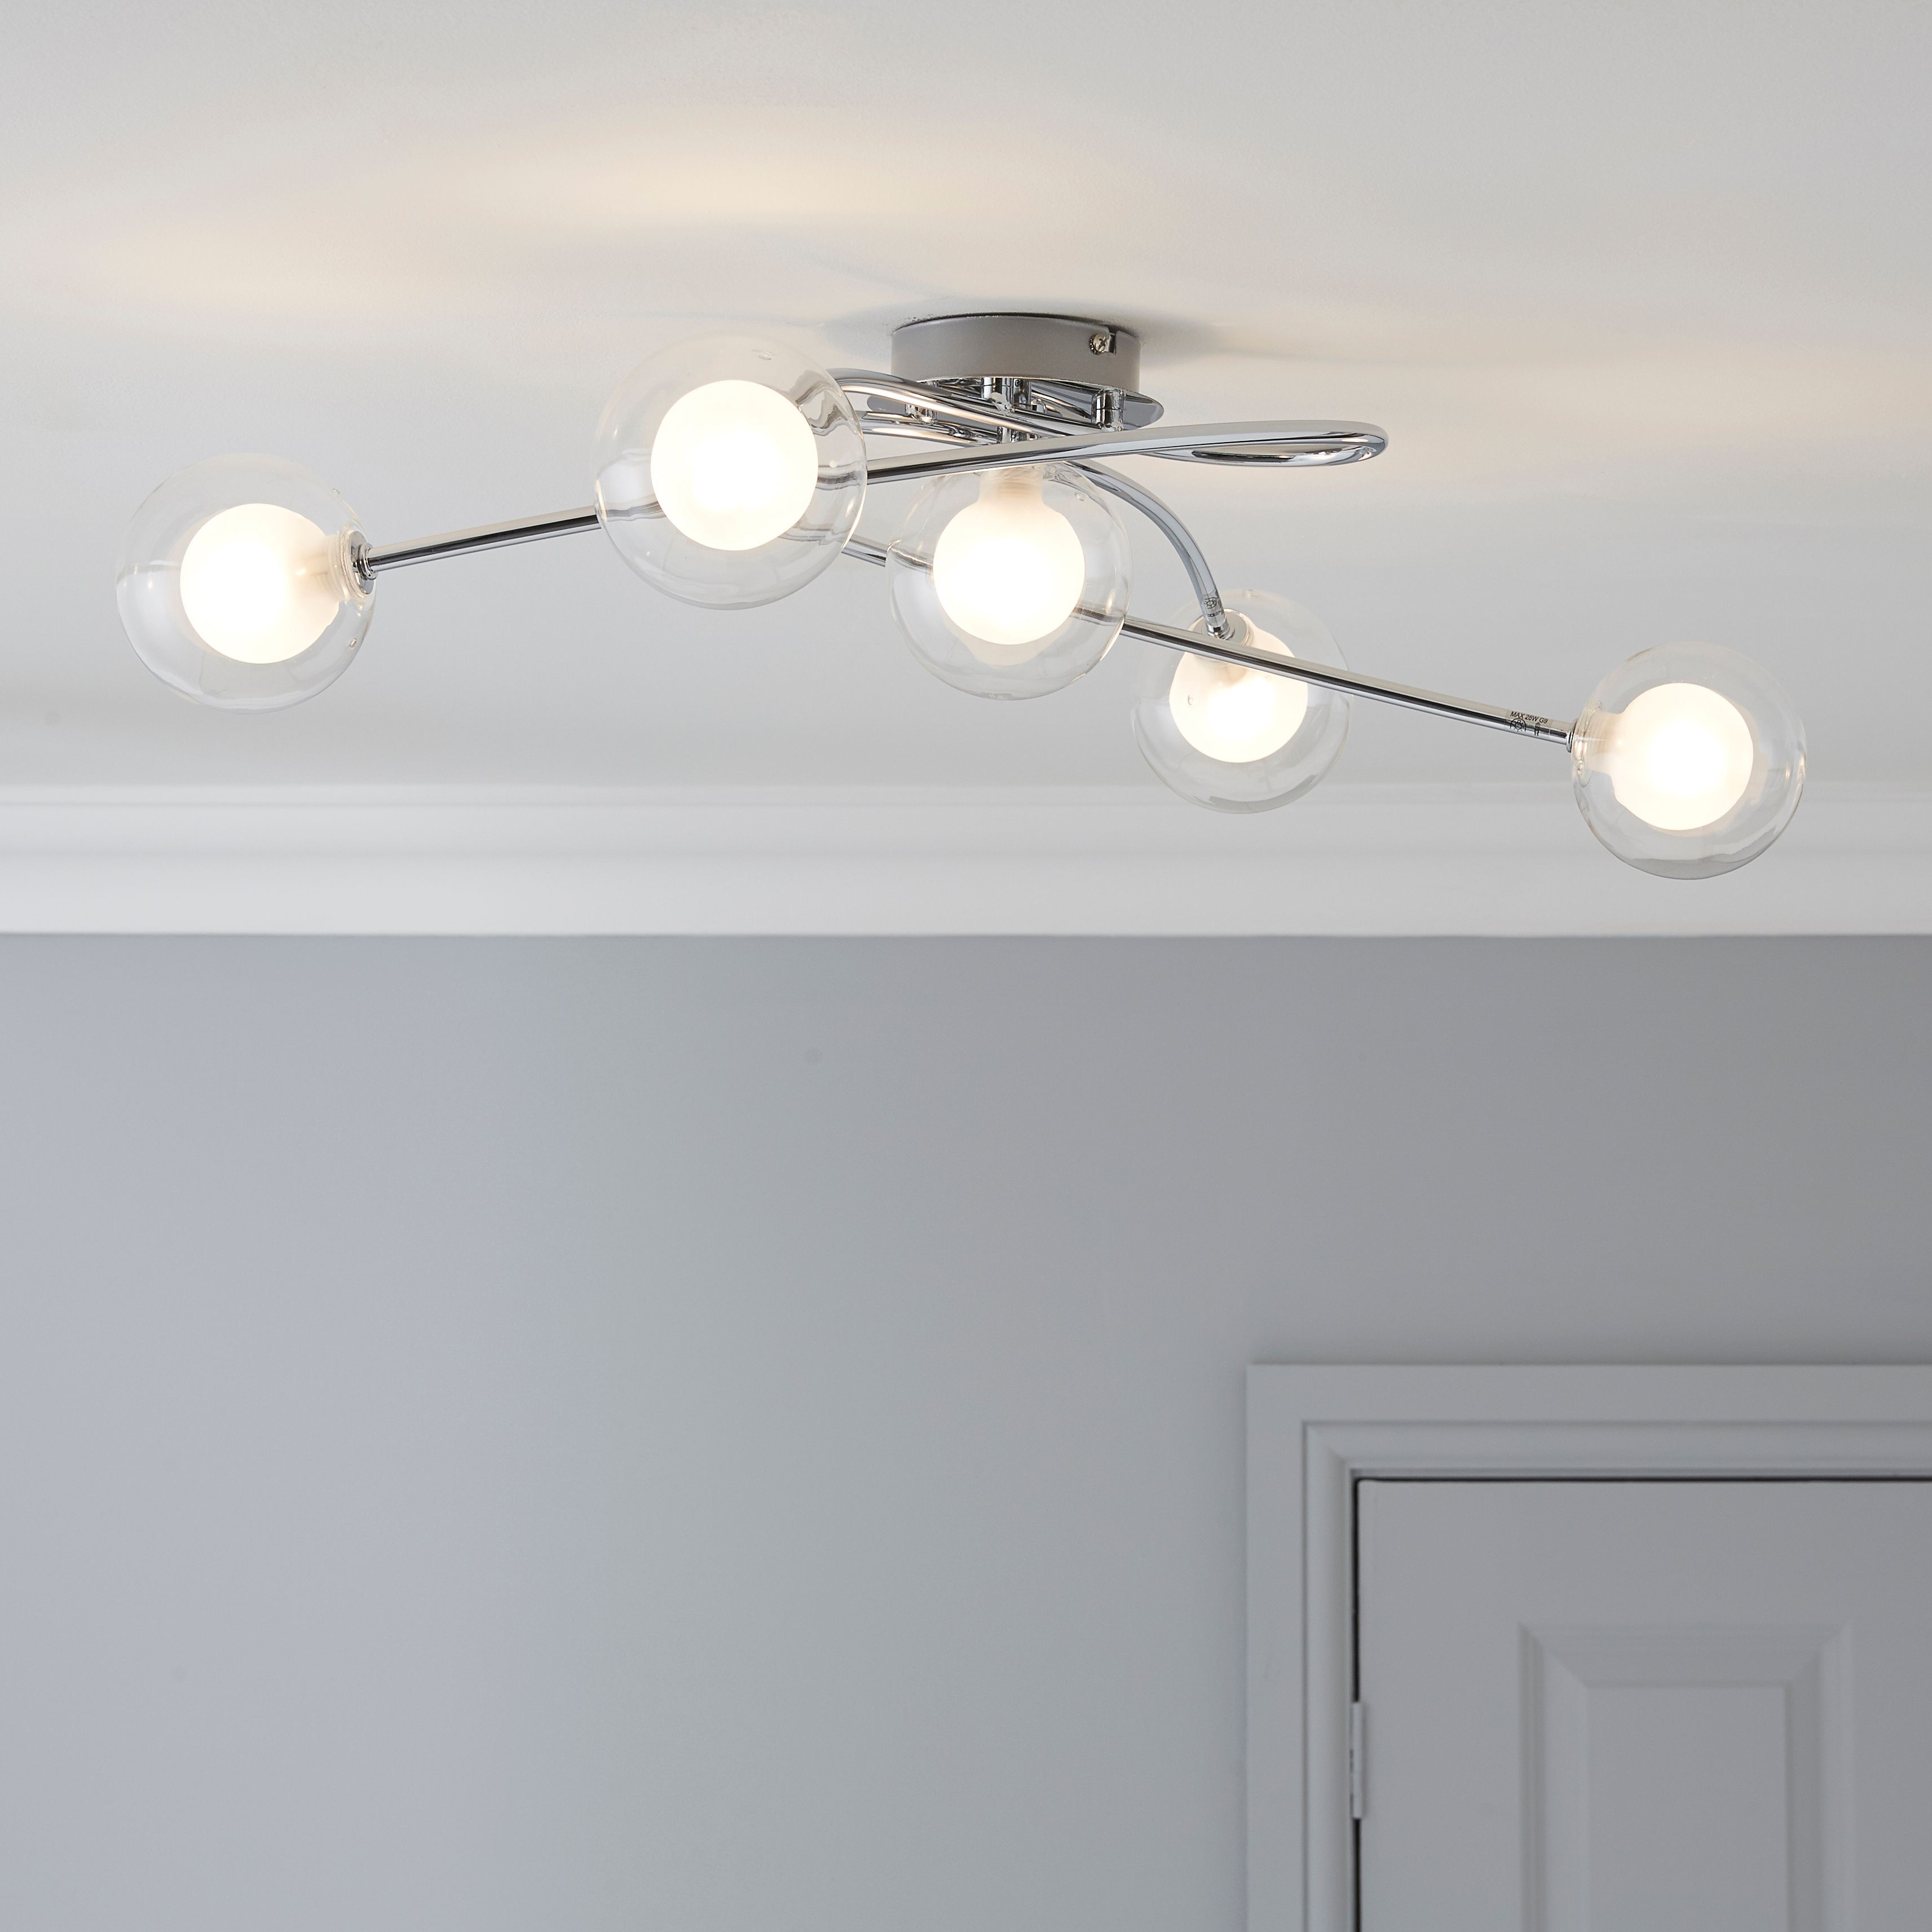 Bistra double glass chrome effect 5 lamp ceiling light departments bistra double glass chrome effect 5 lamp ceiling light bq for all your home and garden supplies and advice on all the latest diy trends aloadofball Image collections